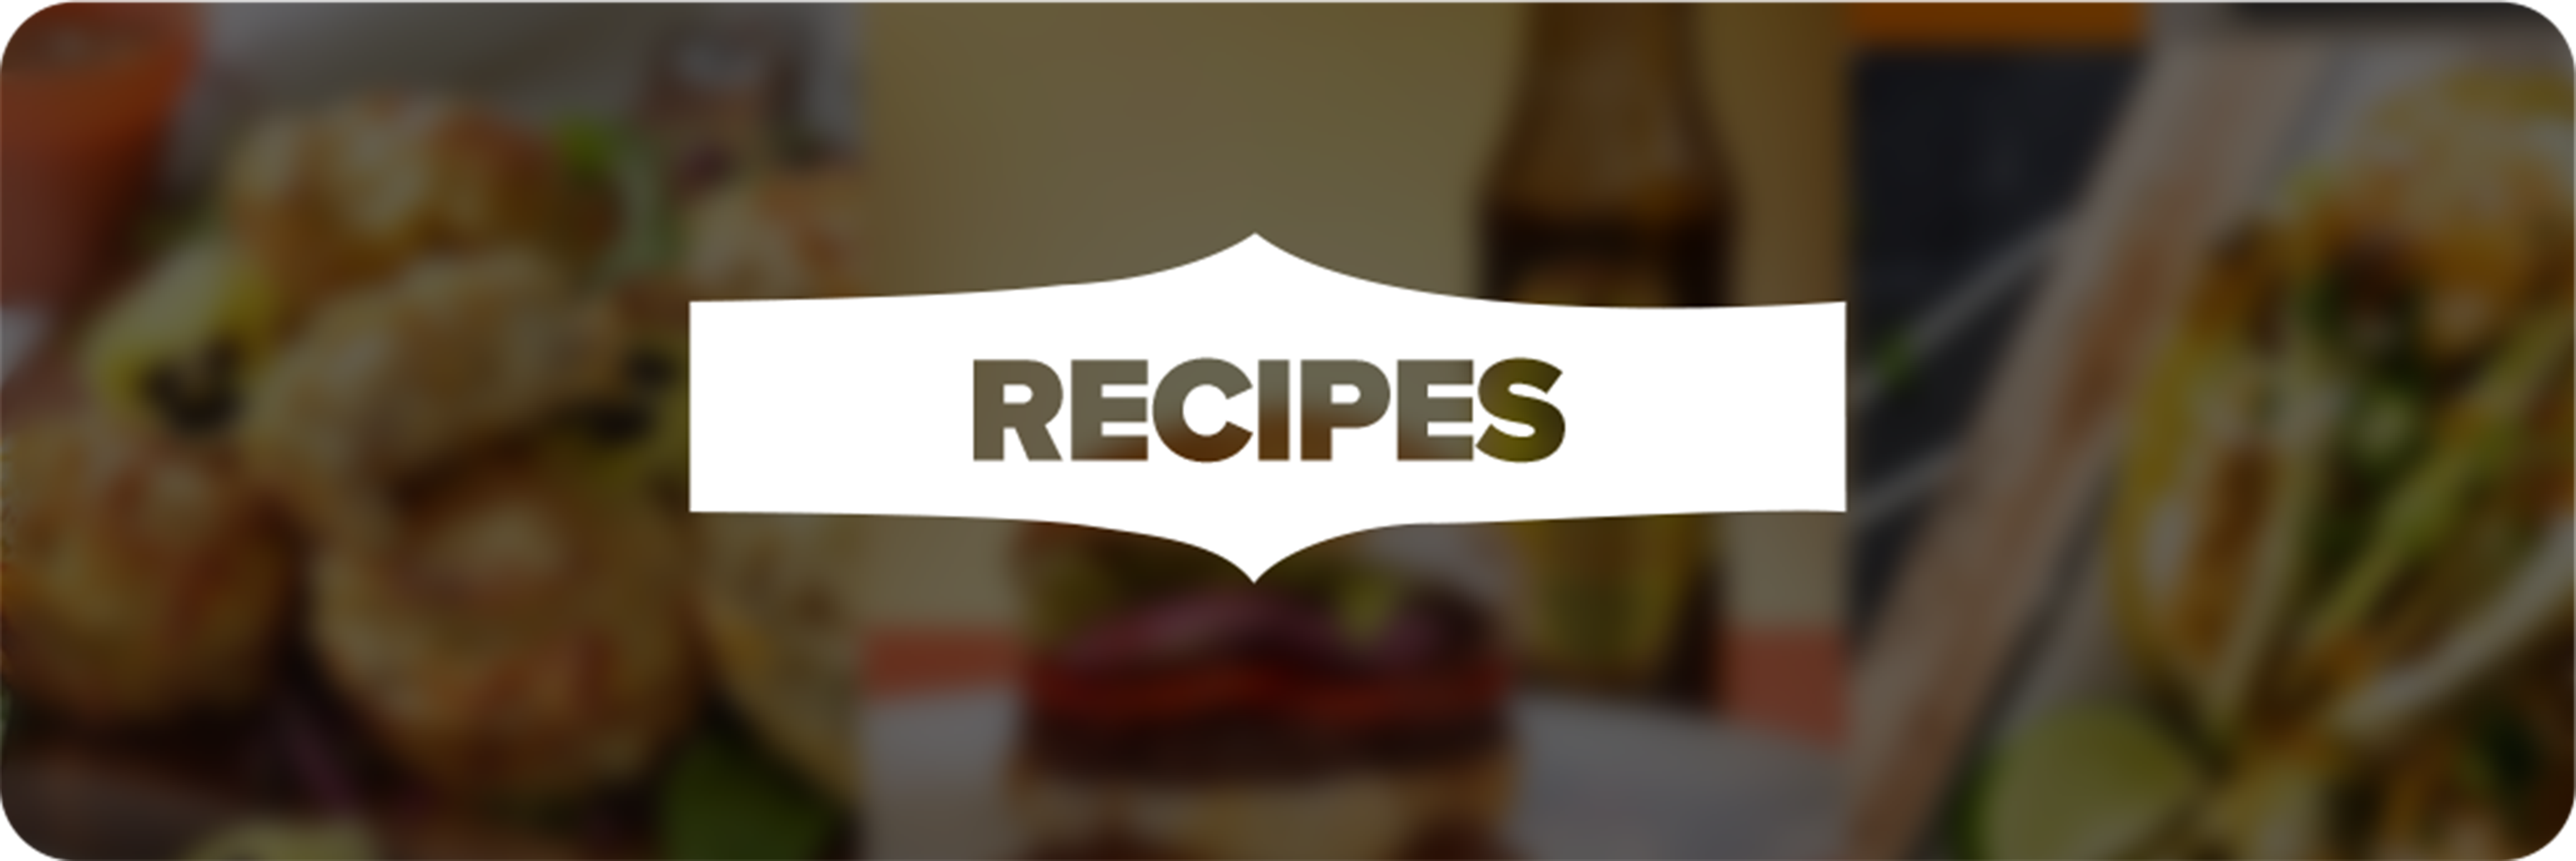 Recipes-Banner